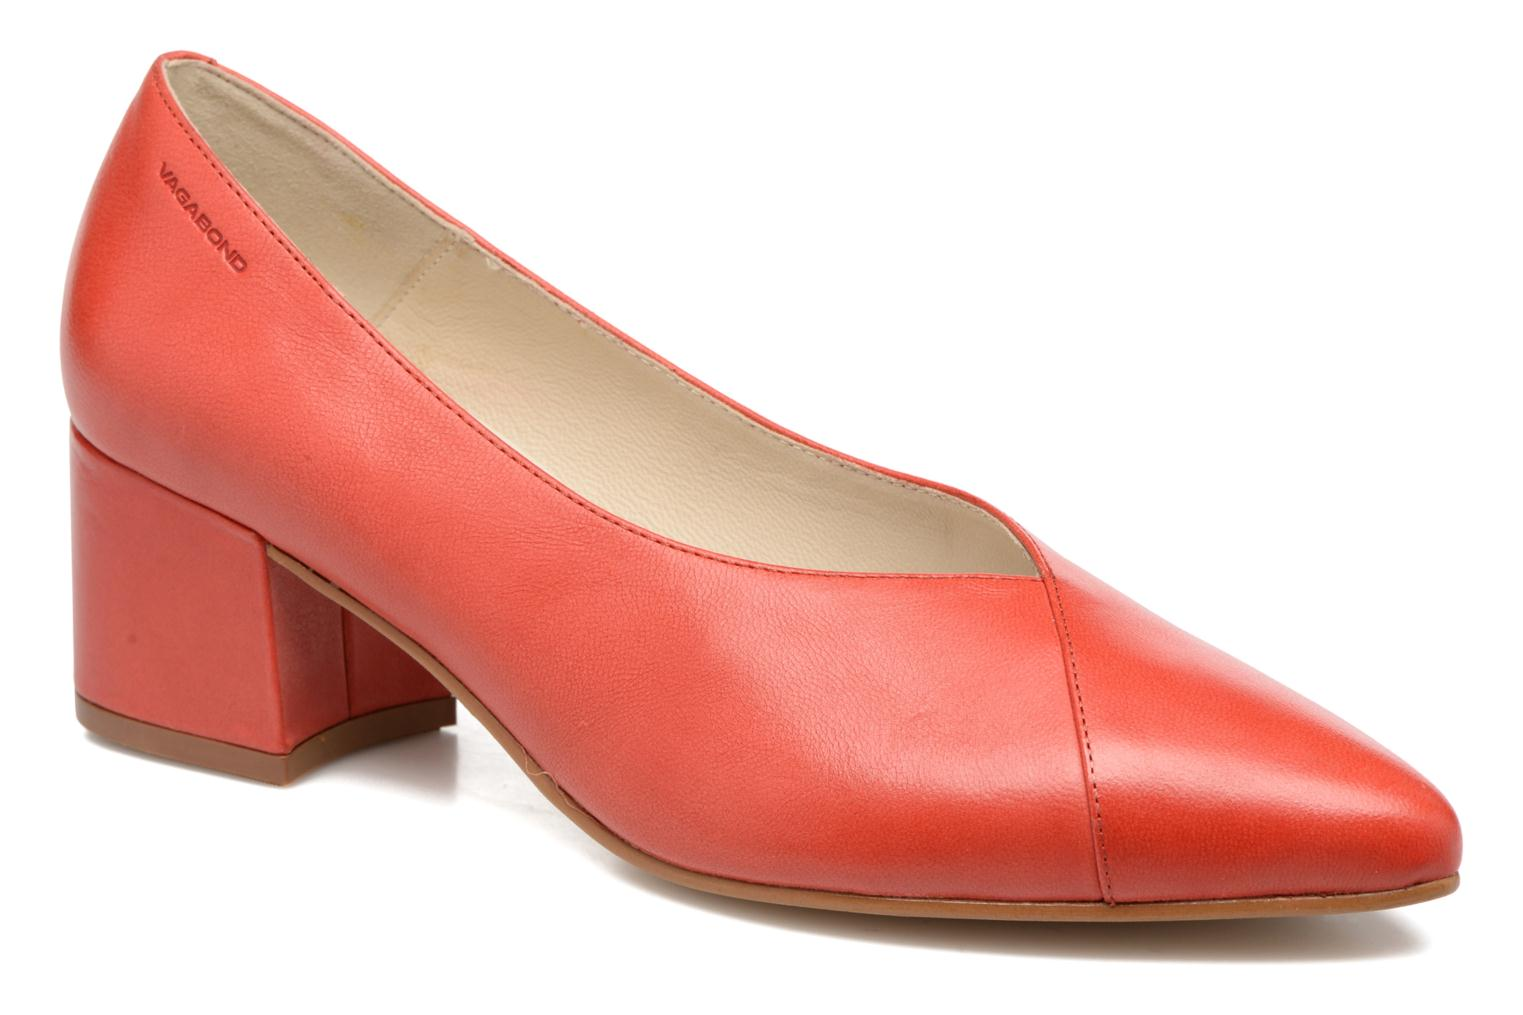 Mya 4319-101 Leather Red